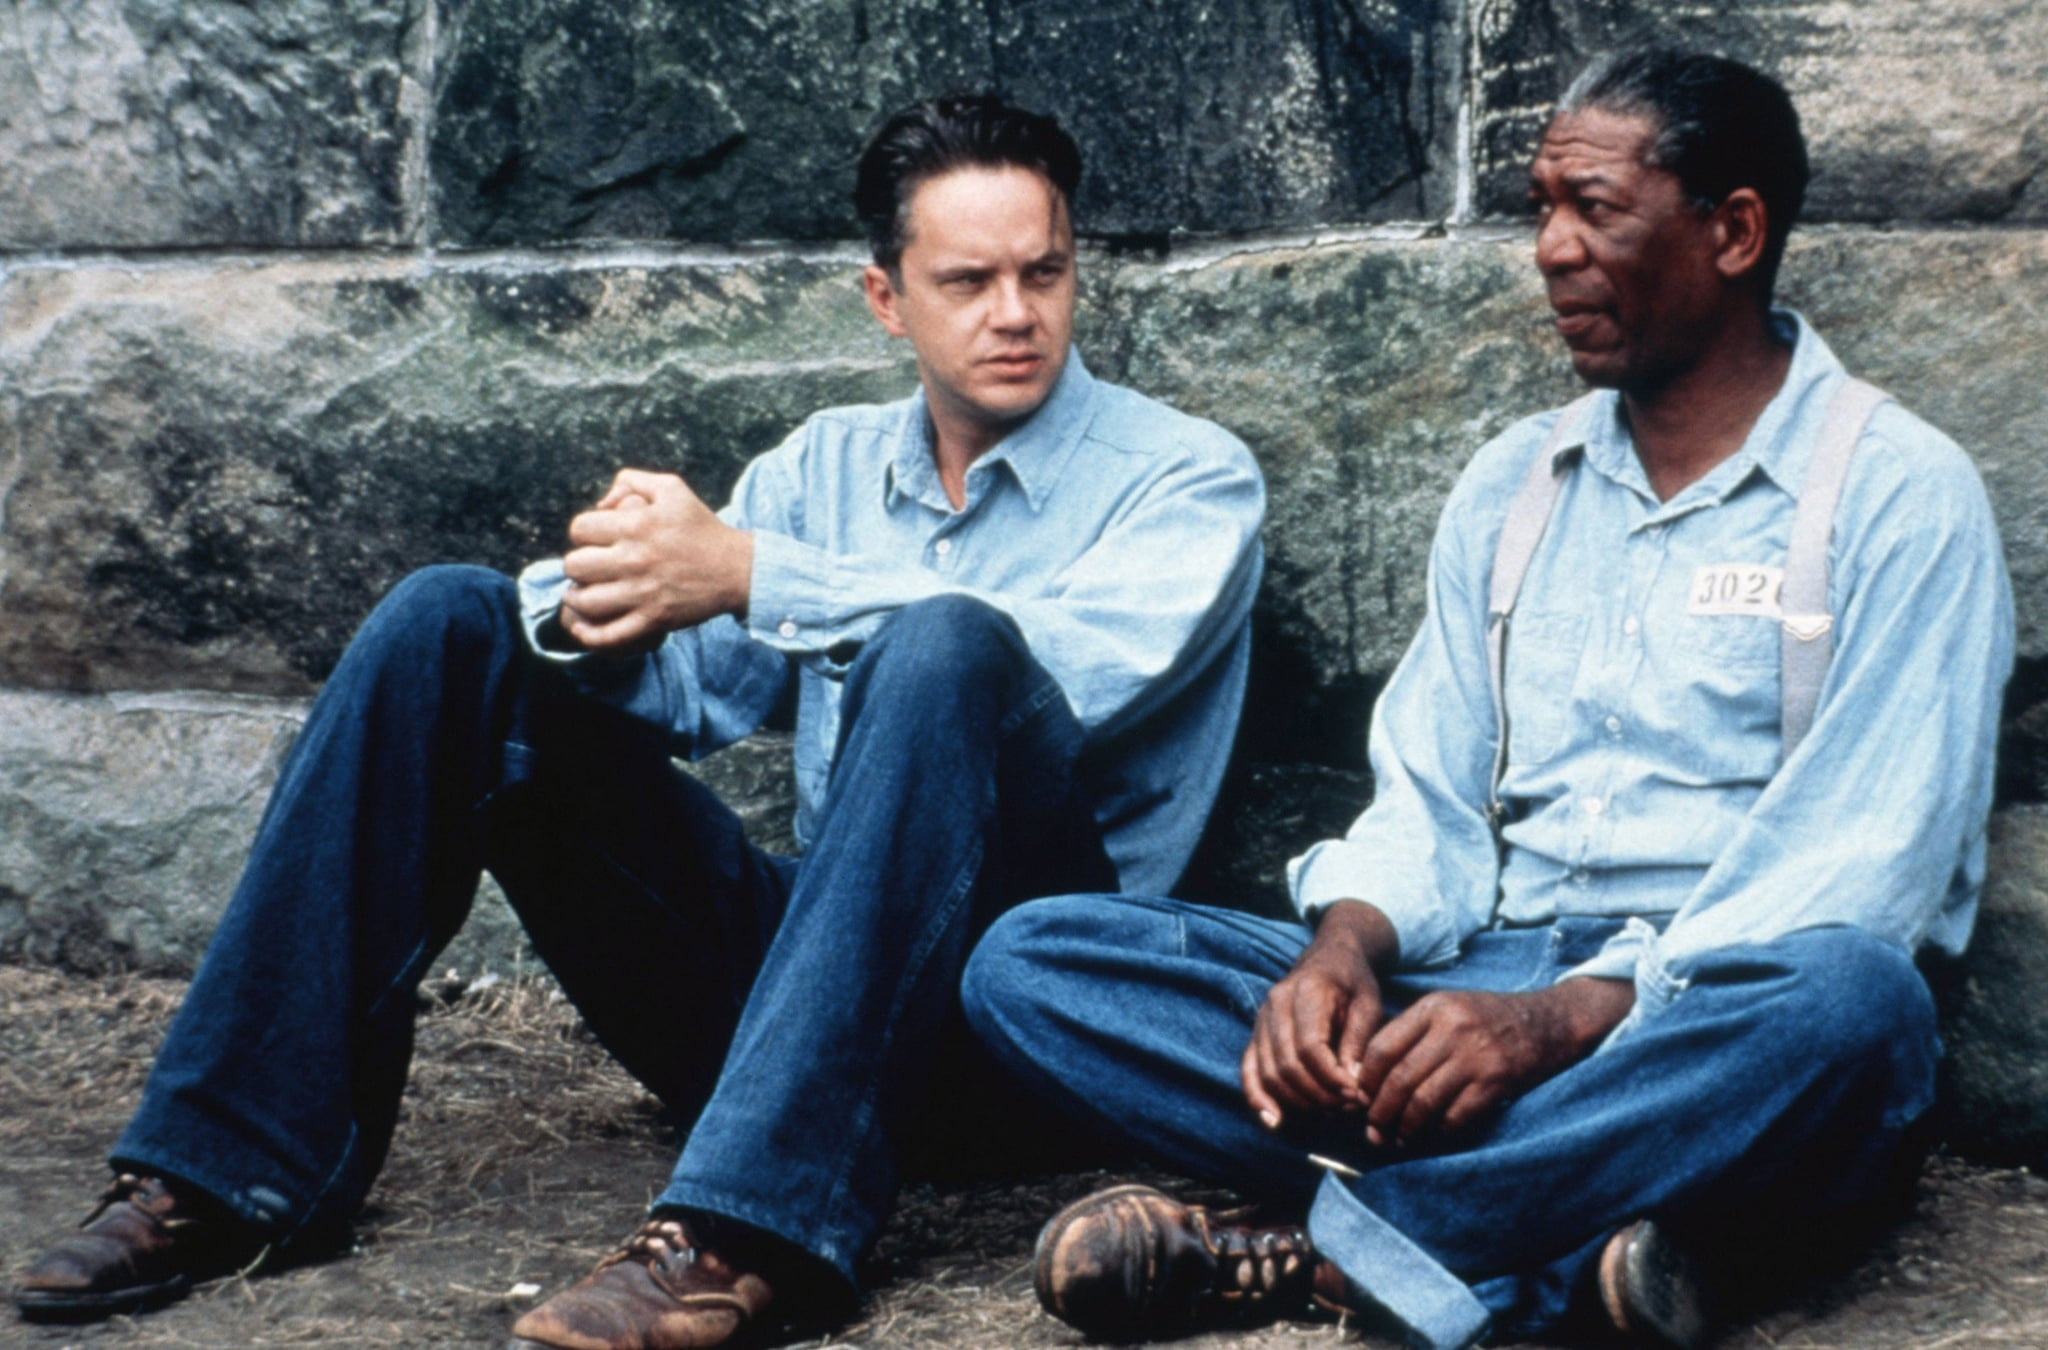 THE SHAWSHANK REDEMPTION, Tim Robbins, Morgan Freeman, 1994, (c) Columbia/courtesy Everett Collection